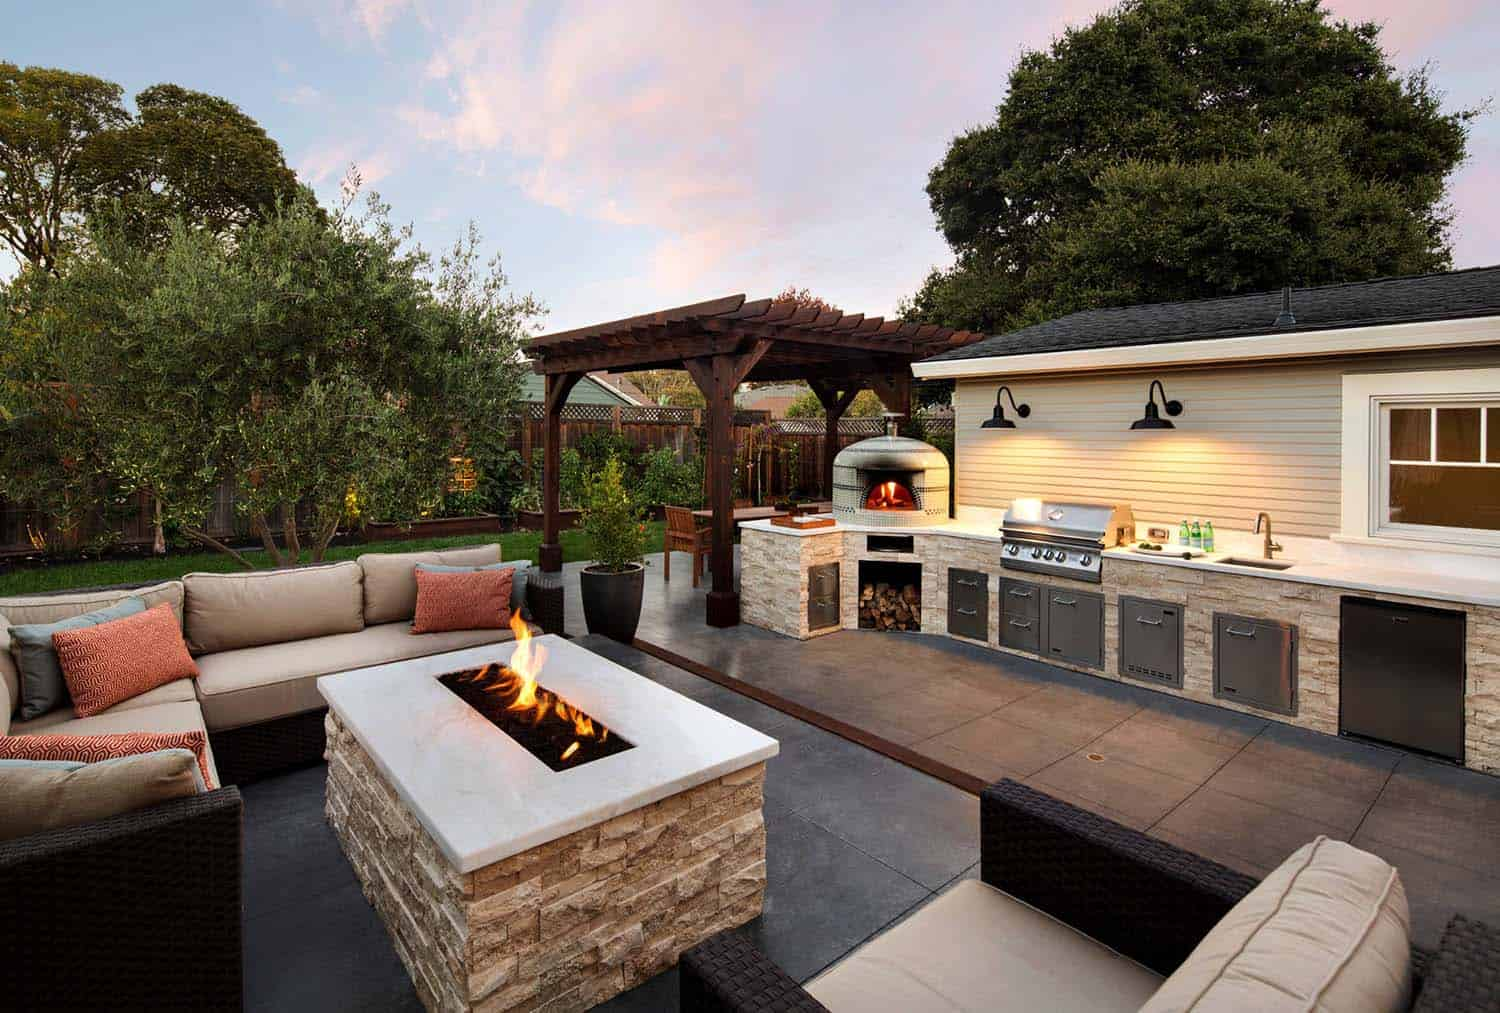 33 Fabulous Ideas For Creating Beautiful Outdoor Living Spaces on Garden Living Space id=49318